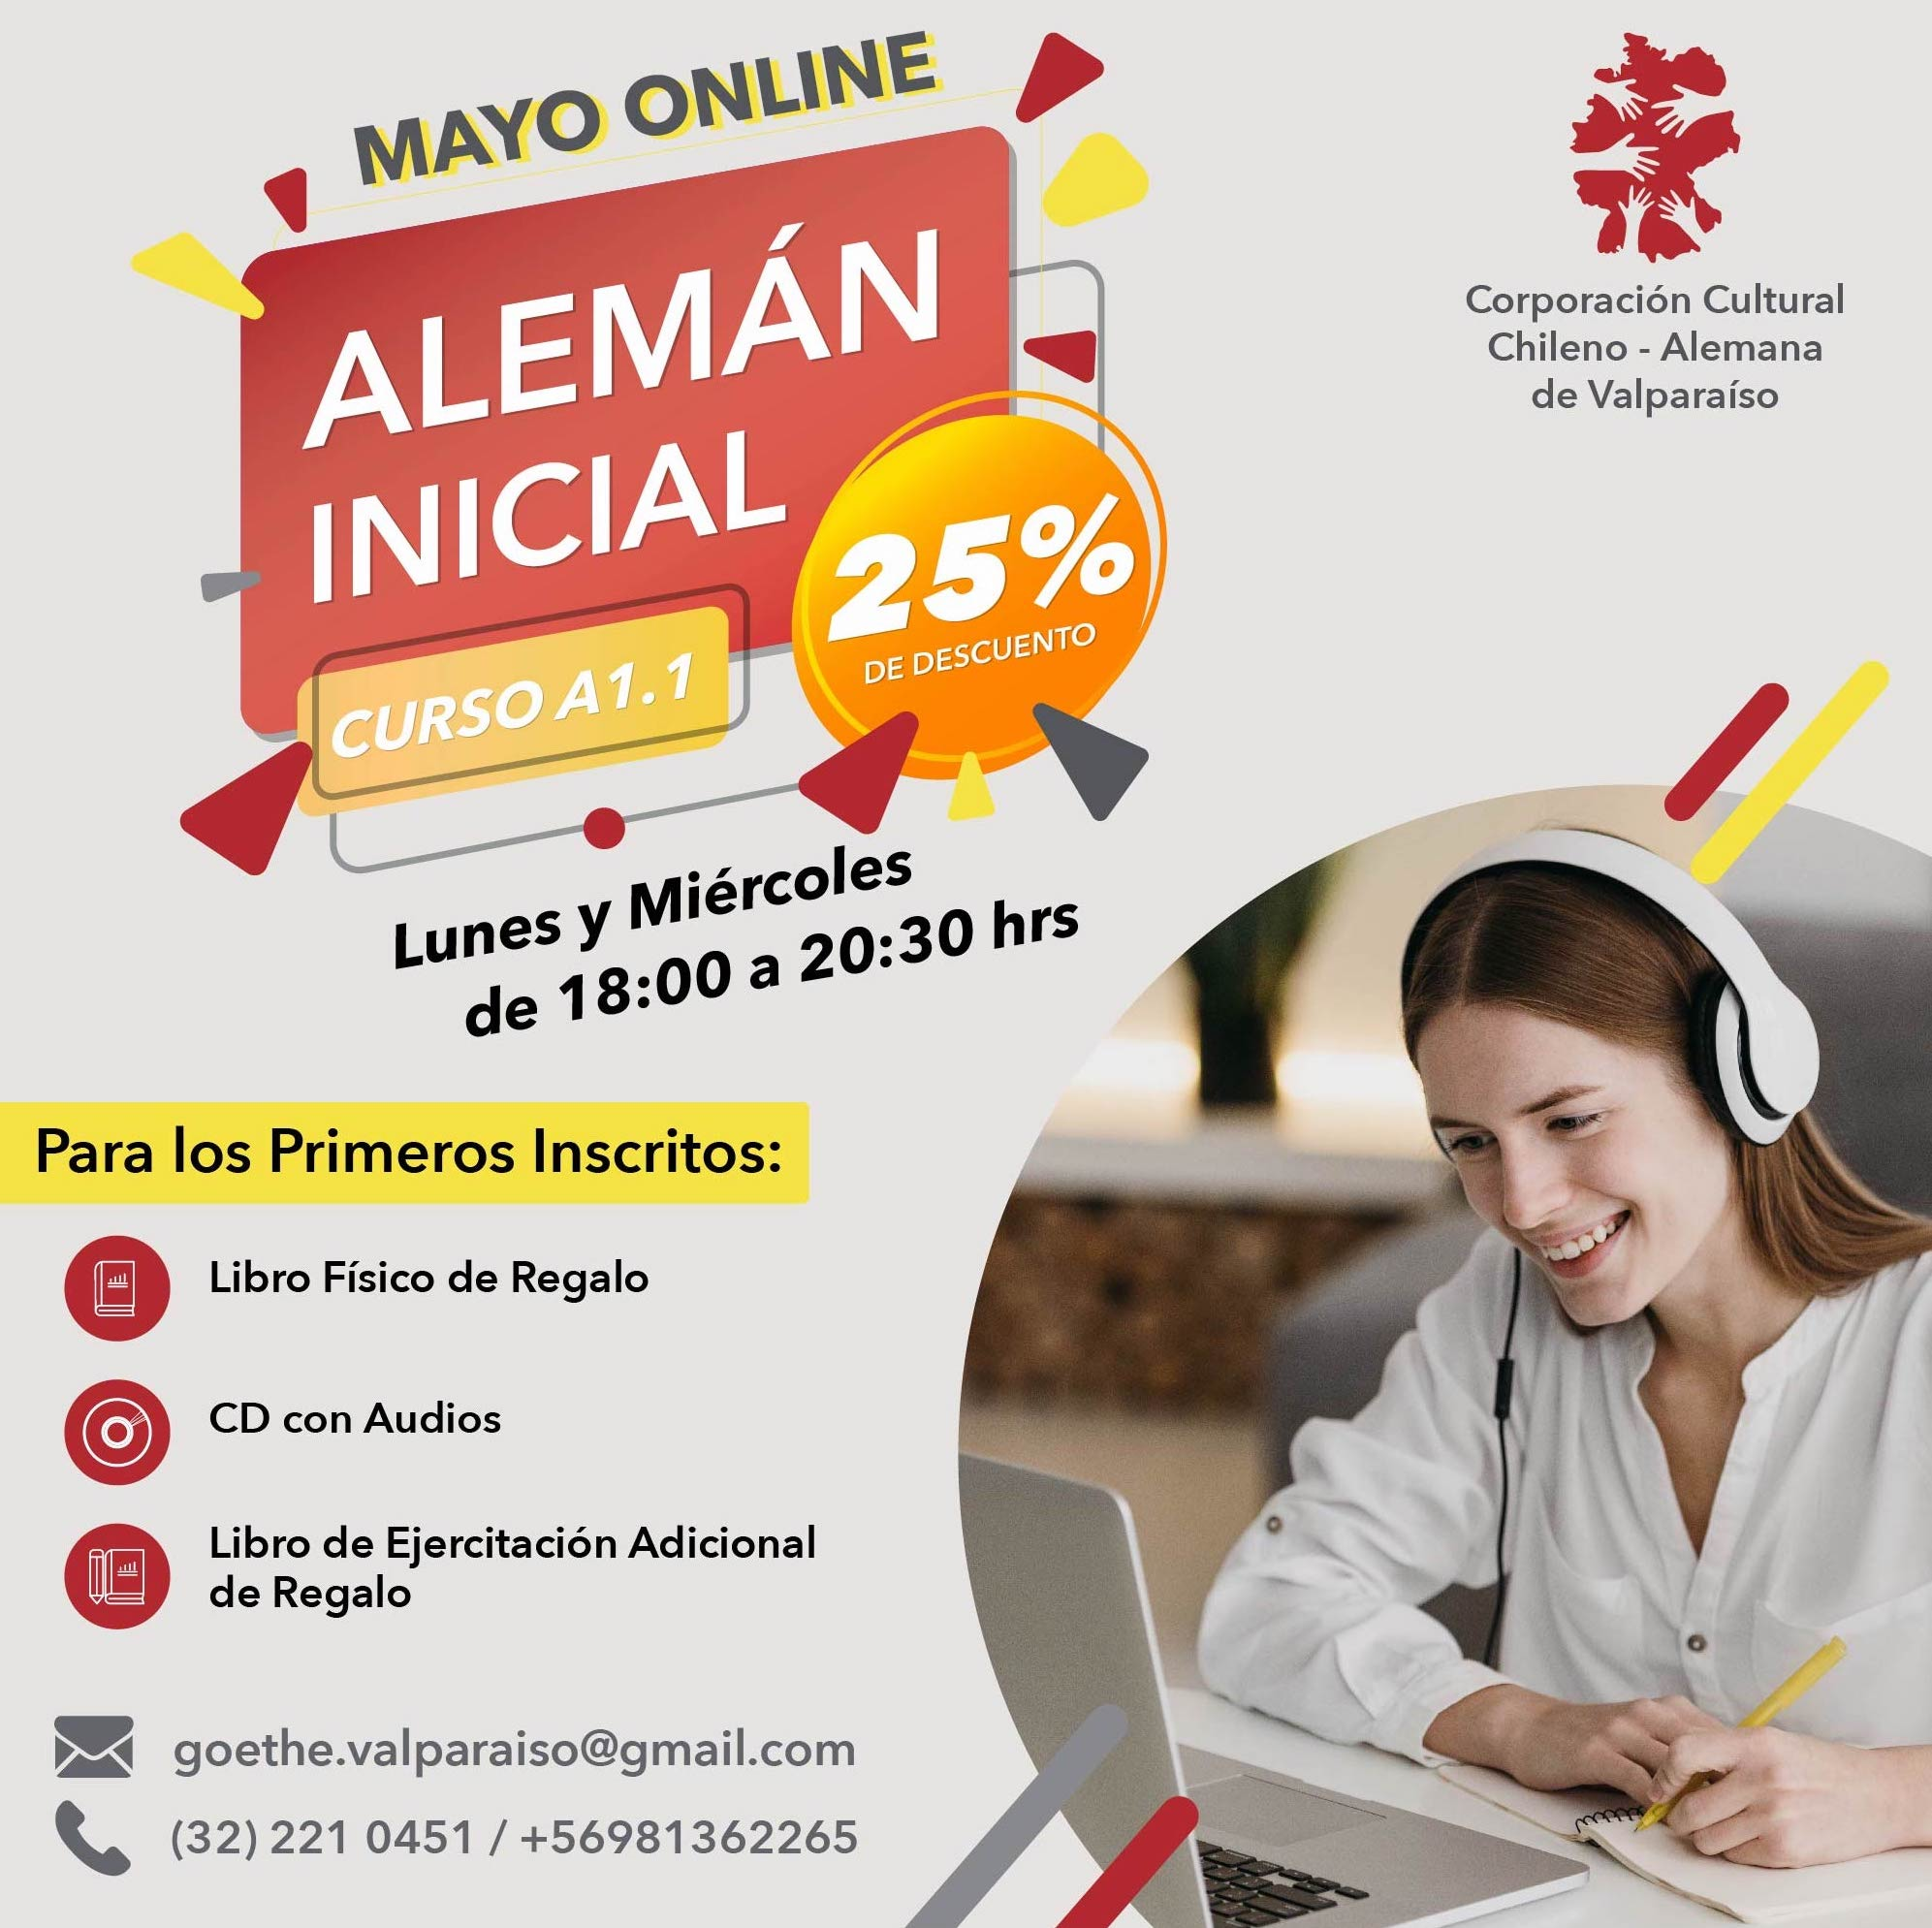 Curso Inicial A1.1 Mayo Online